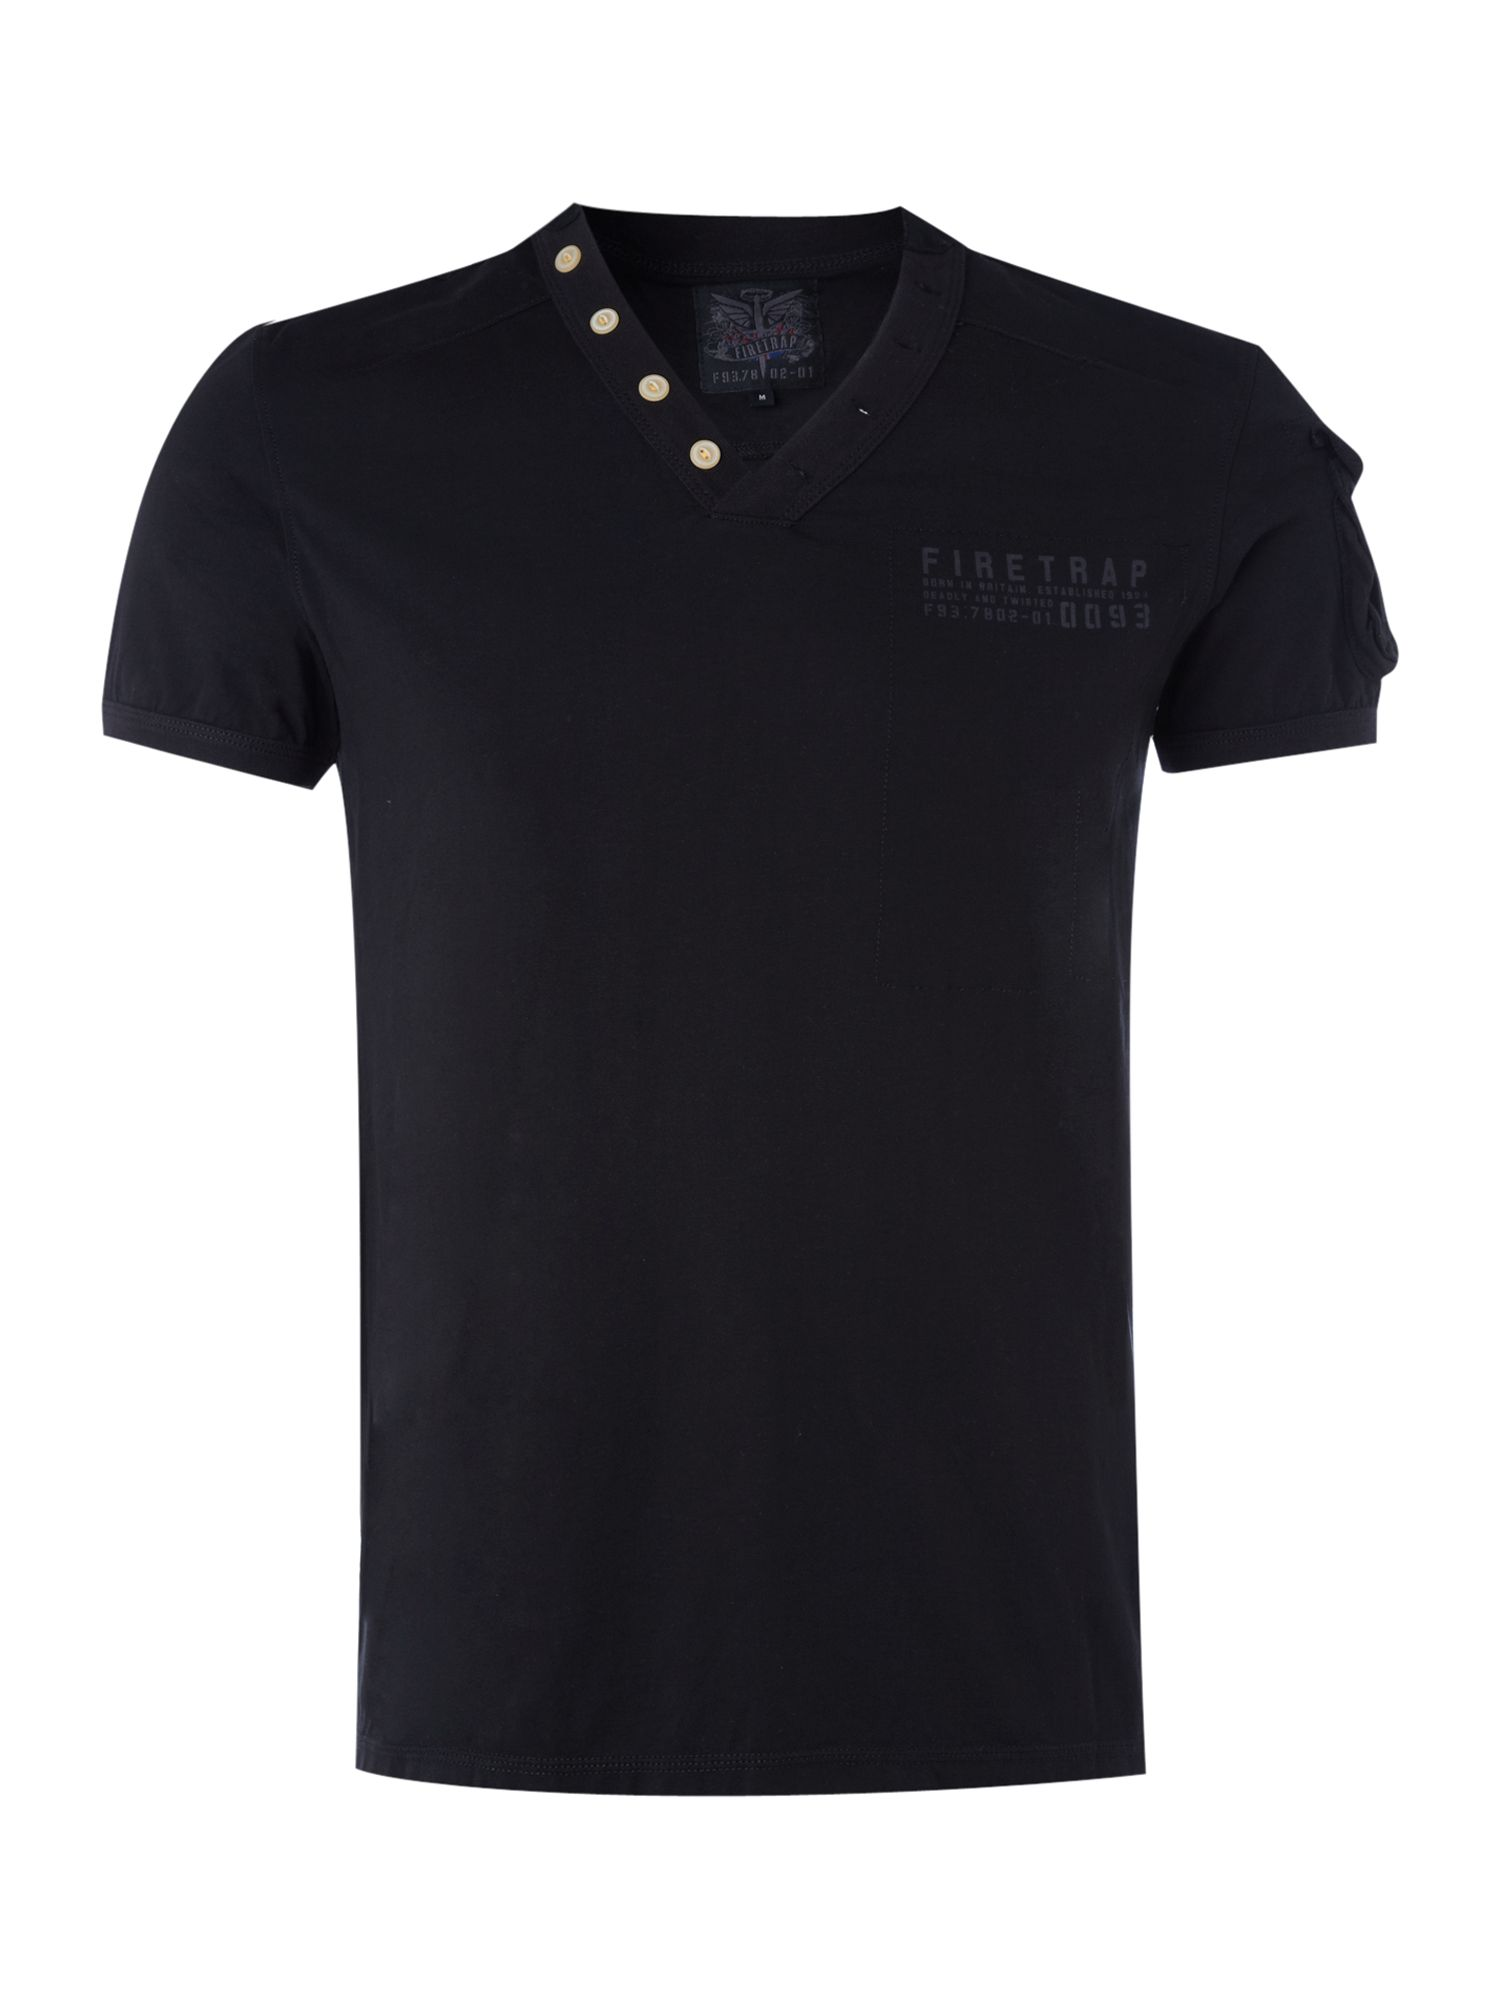 Firetrap Mens Firetrap V-neck button detail T-shirt, product image